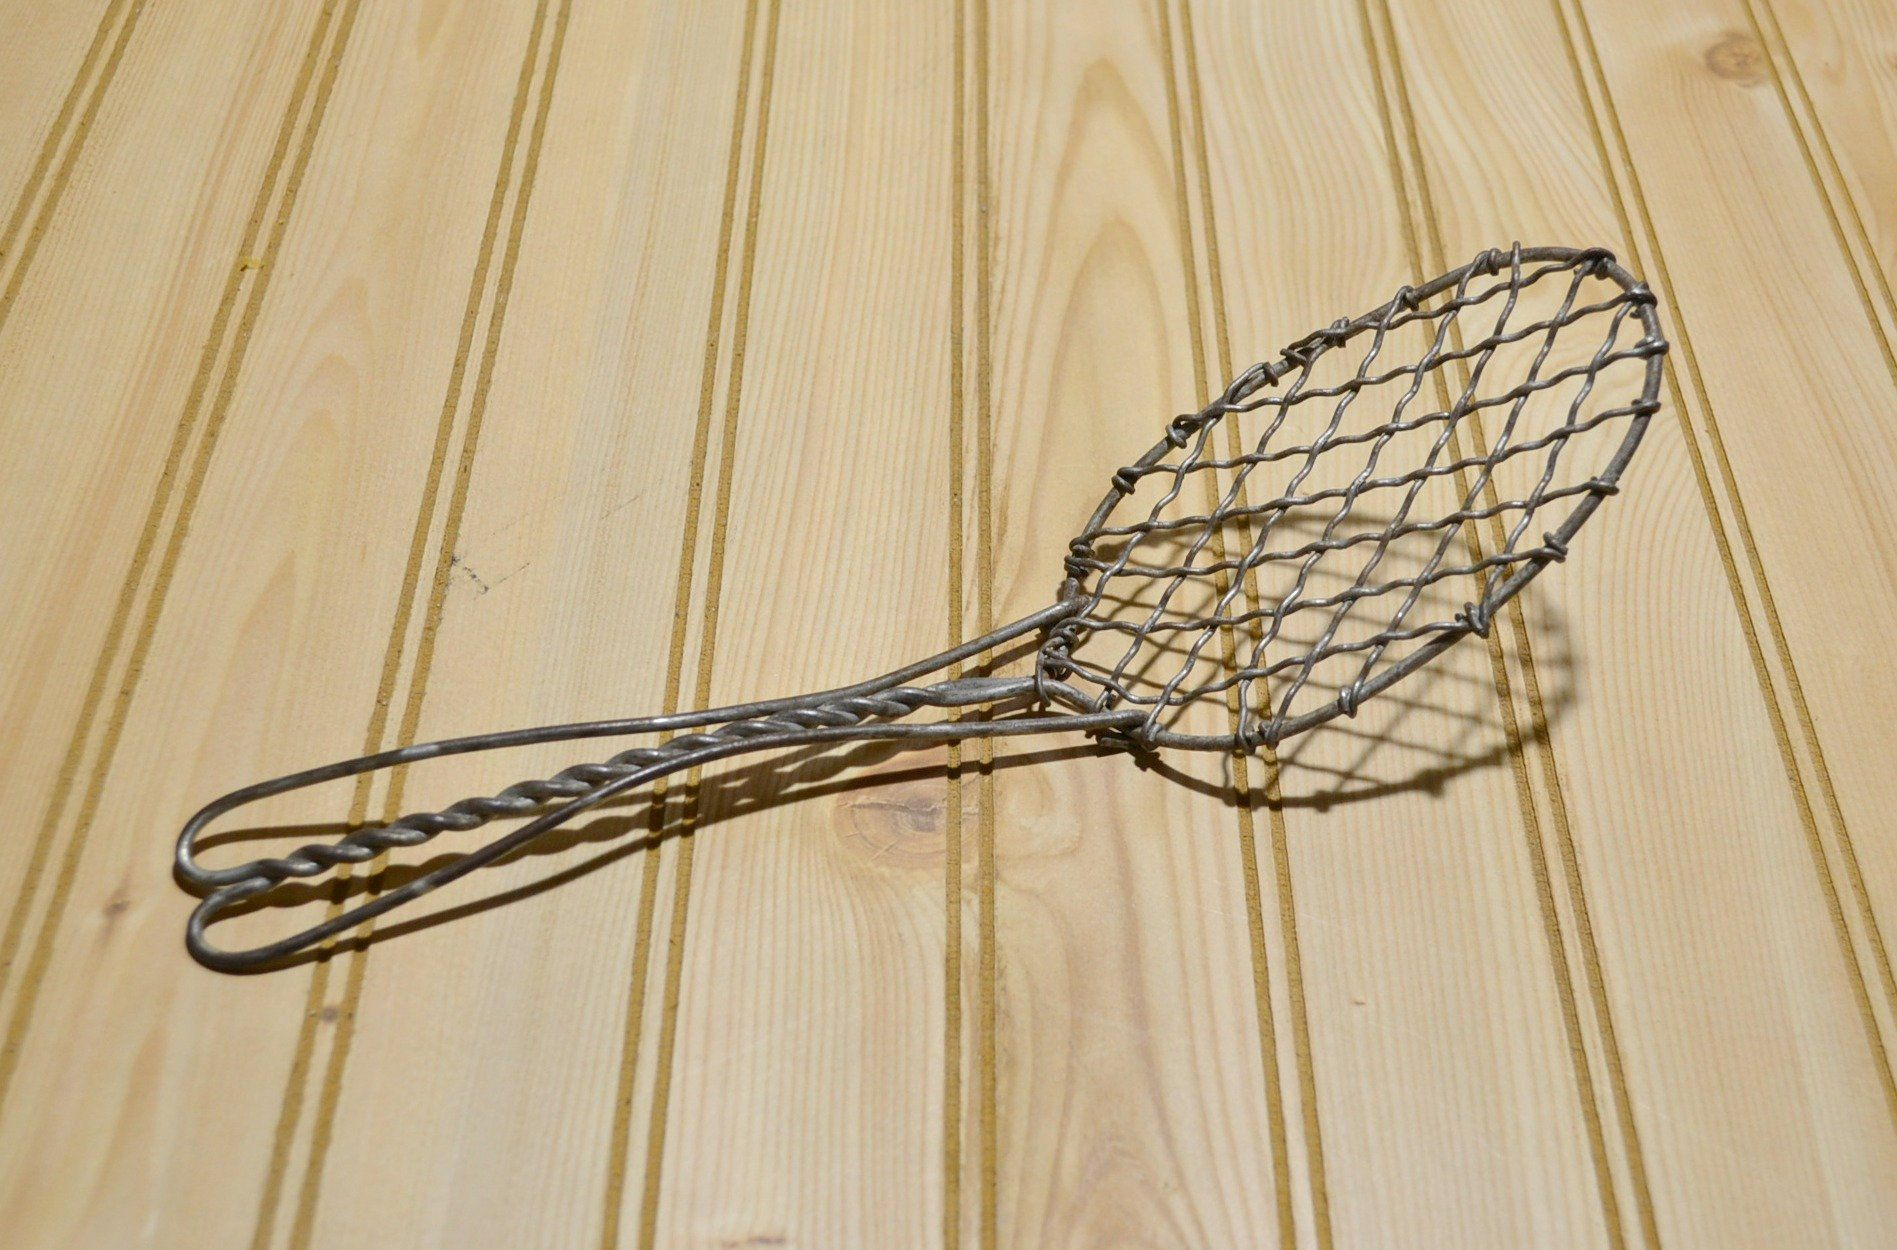 Vintage Antique Metal Wire Spoon Mixer Strainer Egg Beater Whip